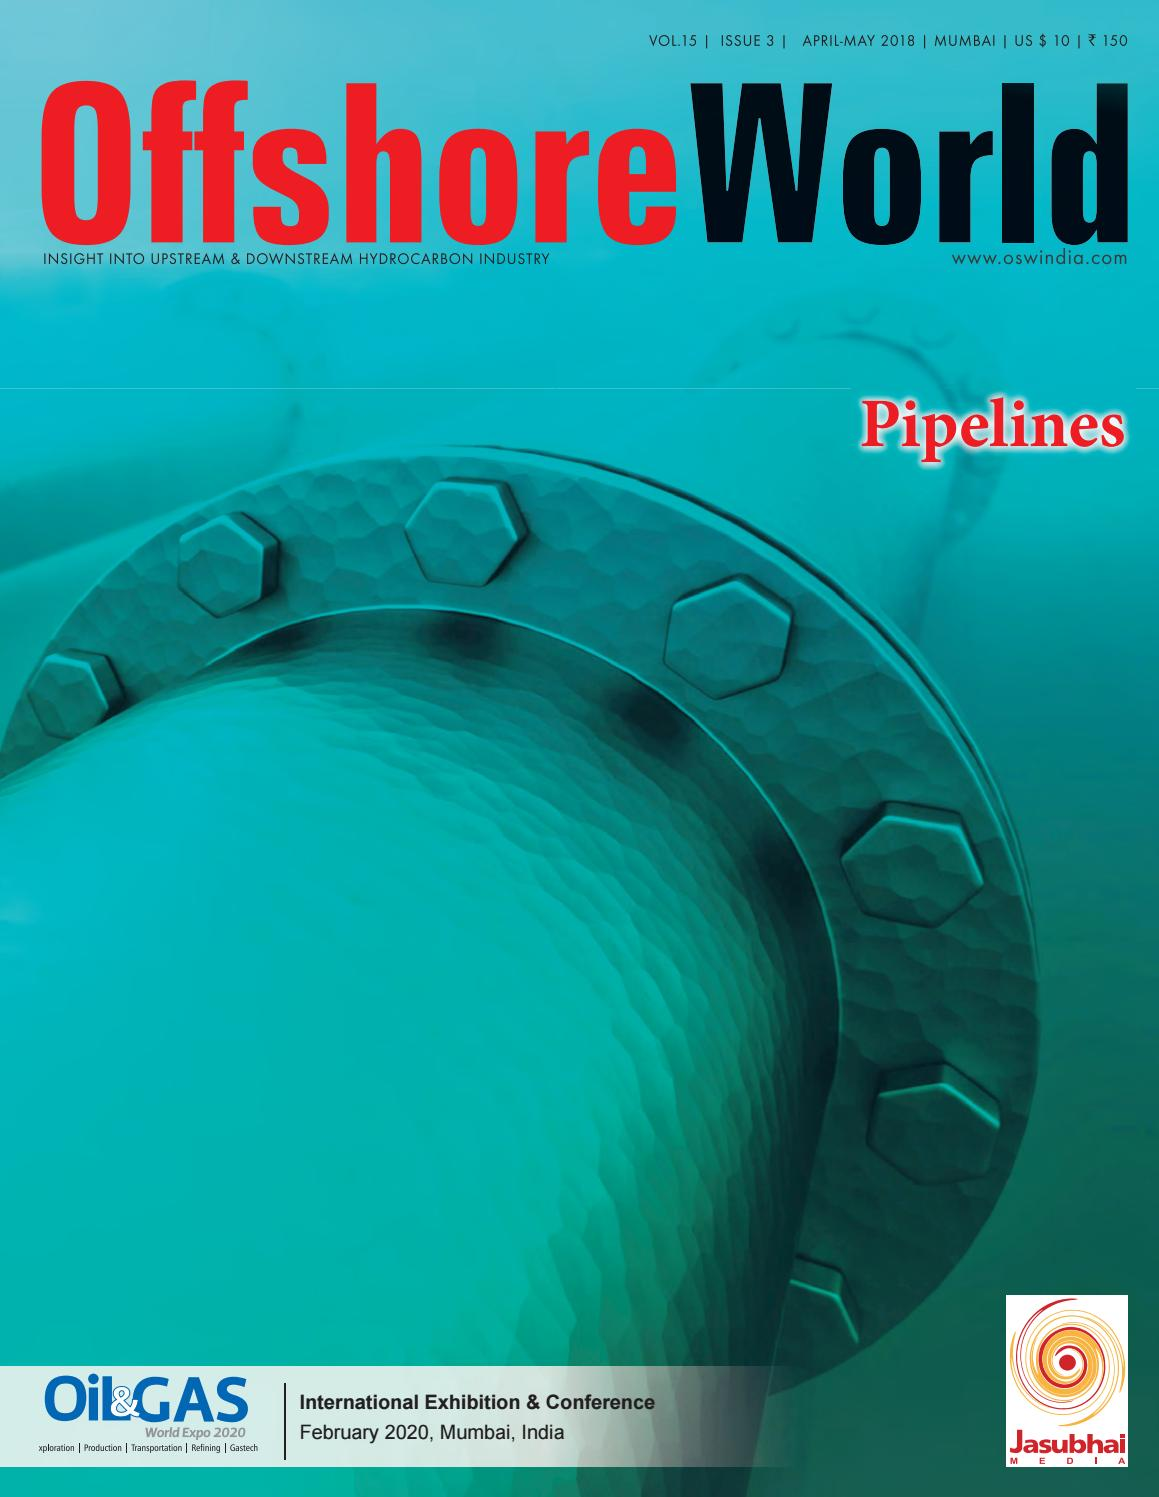 Osw low april may 2018 by Offshore World - issuu